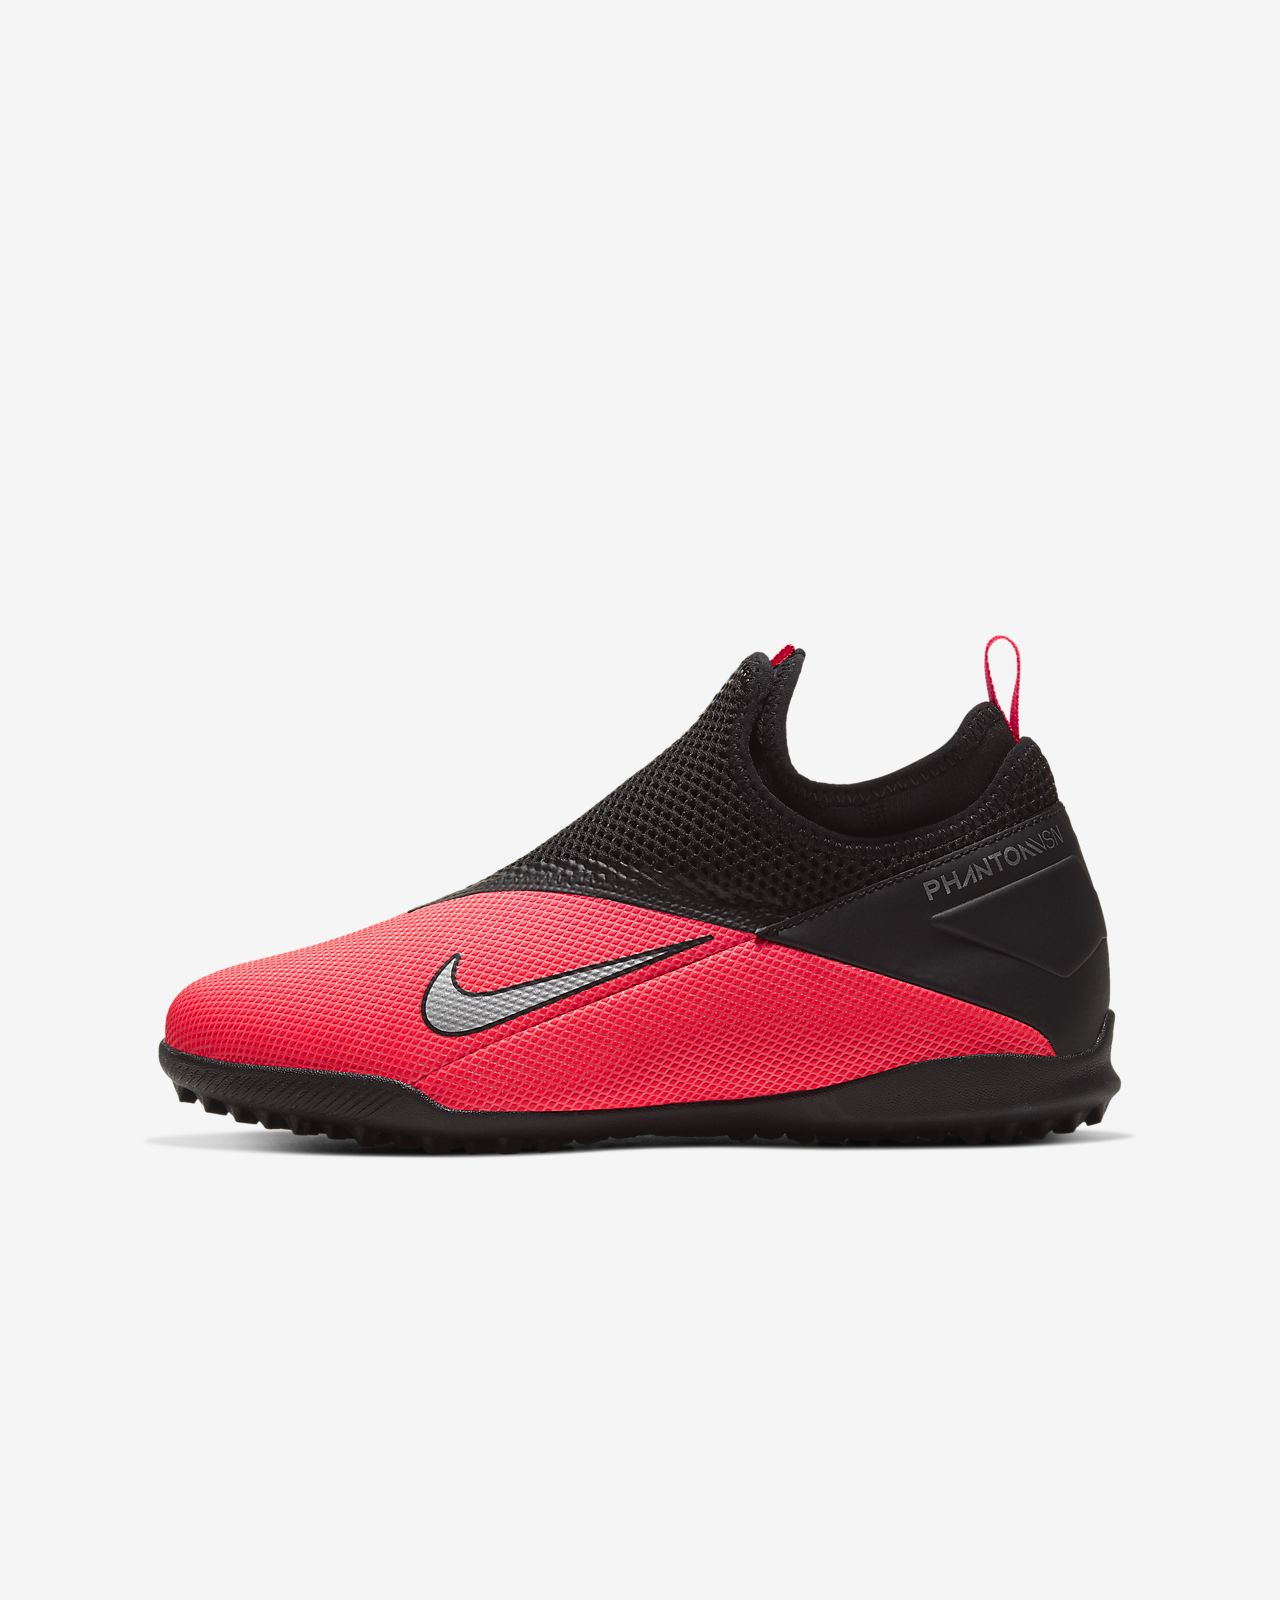 Nike Jr. Phantom Vision 2 Academy Dynamic Fit TF YoungerOlder Kids' Artificial Turf Football Shoe